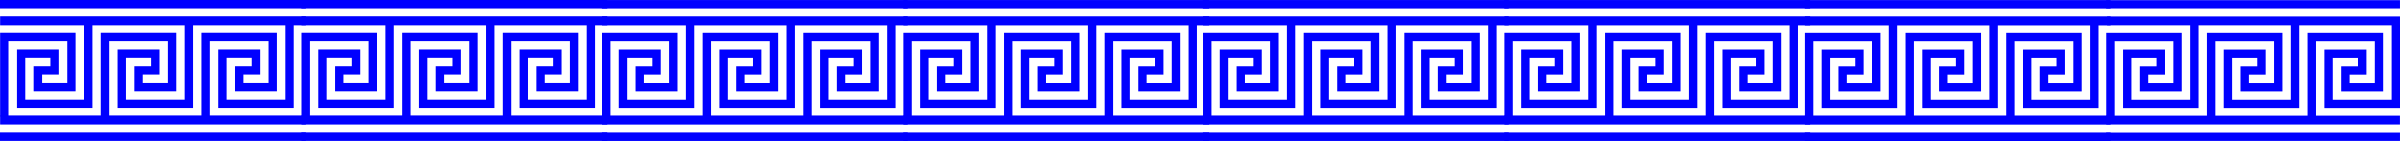 Greek key border png. Blue with lines icons